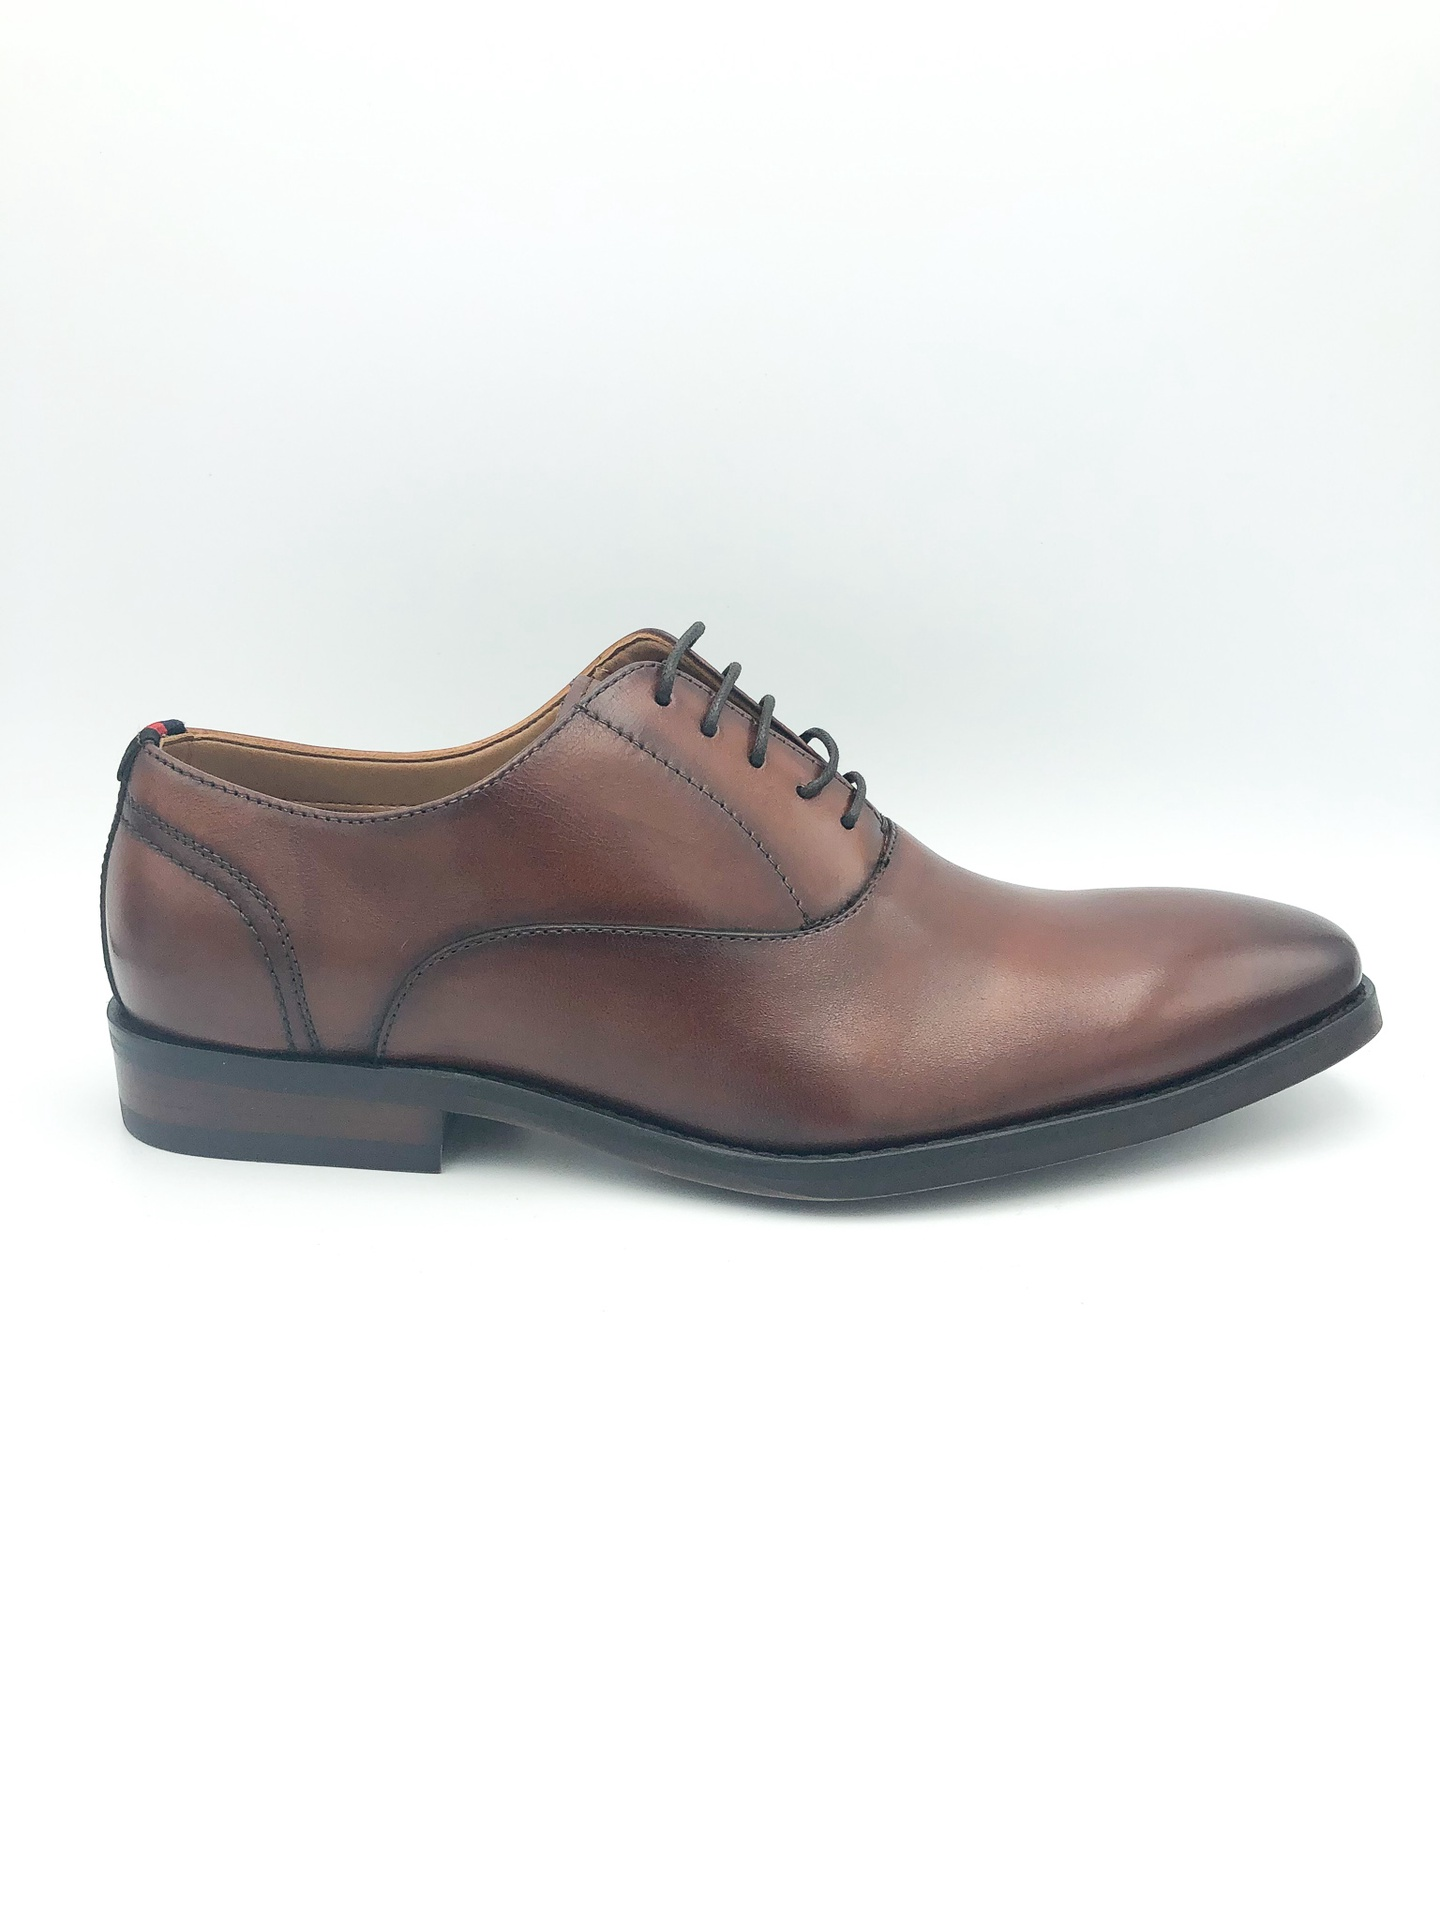 STEVE MADDEN- DRISCOLL IN TAN LEATHER